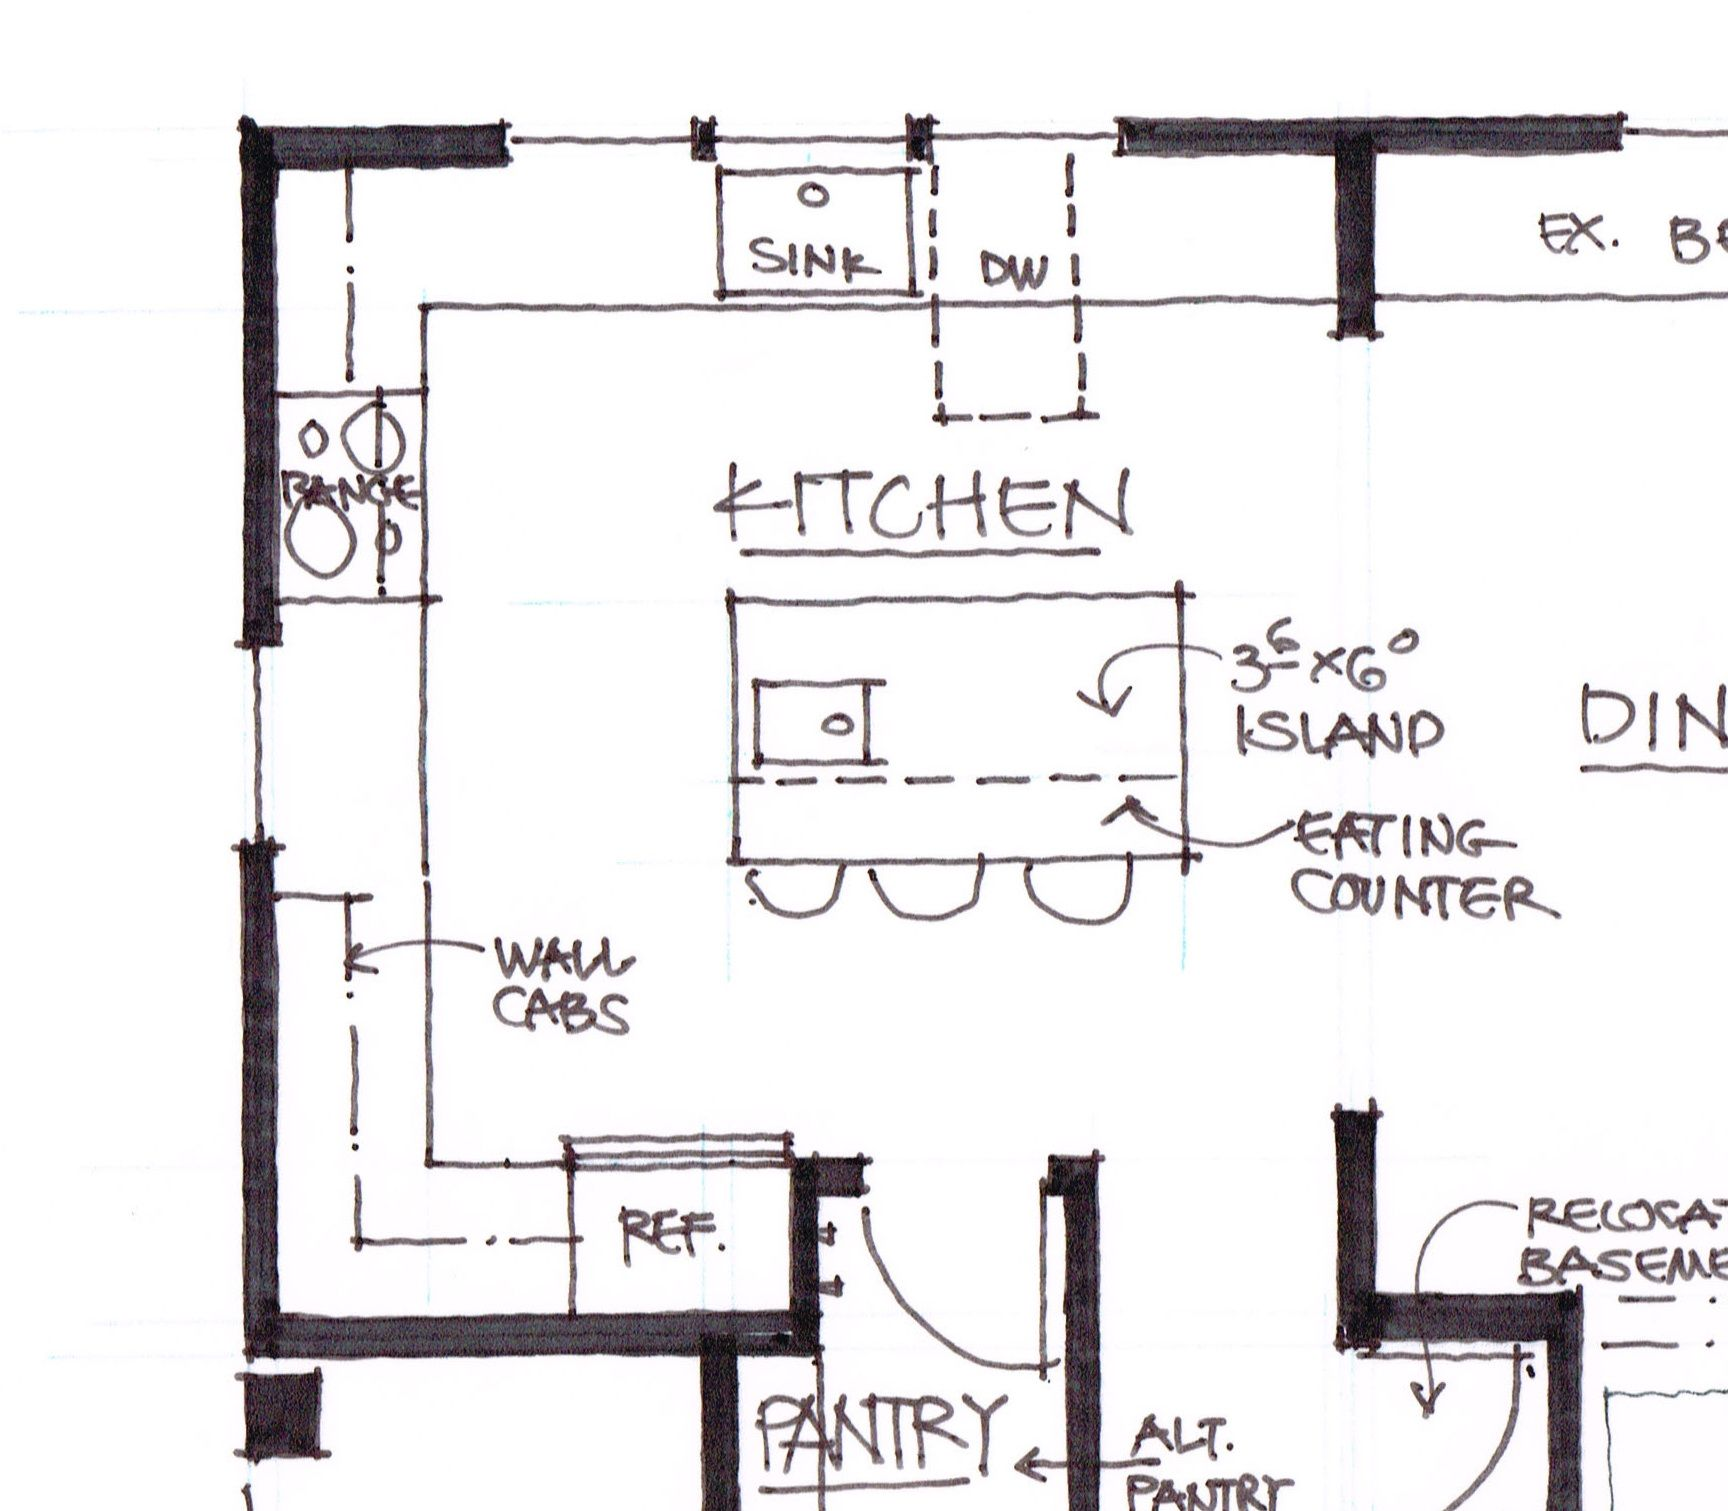 Kitchen Design Plans With Island kitchen floor planssize - kitchen island dimensions with